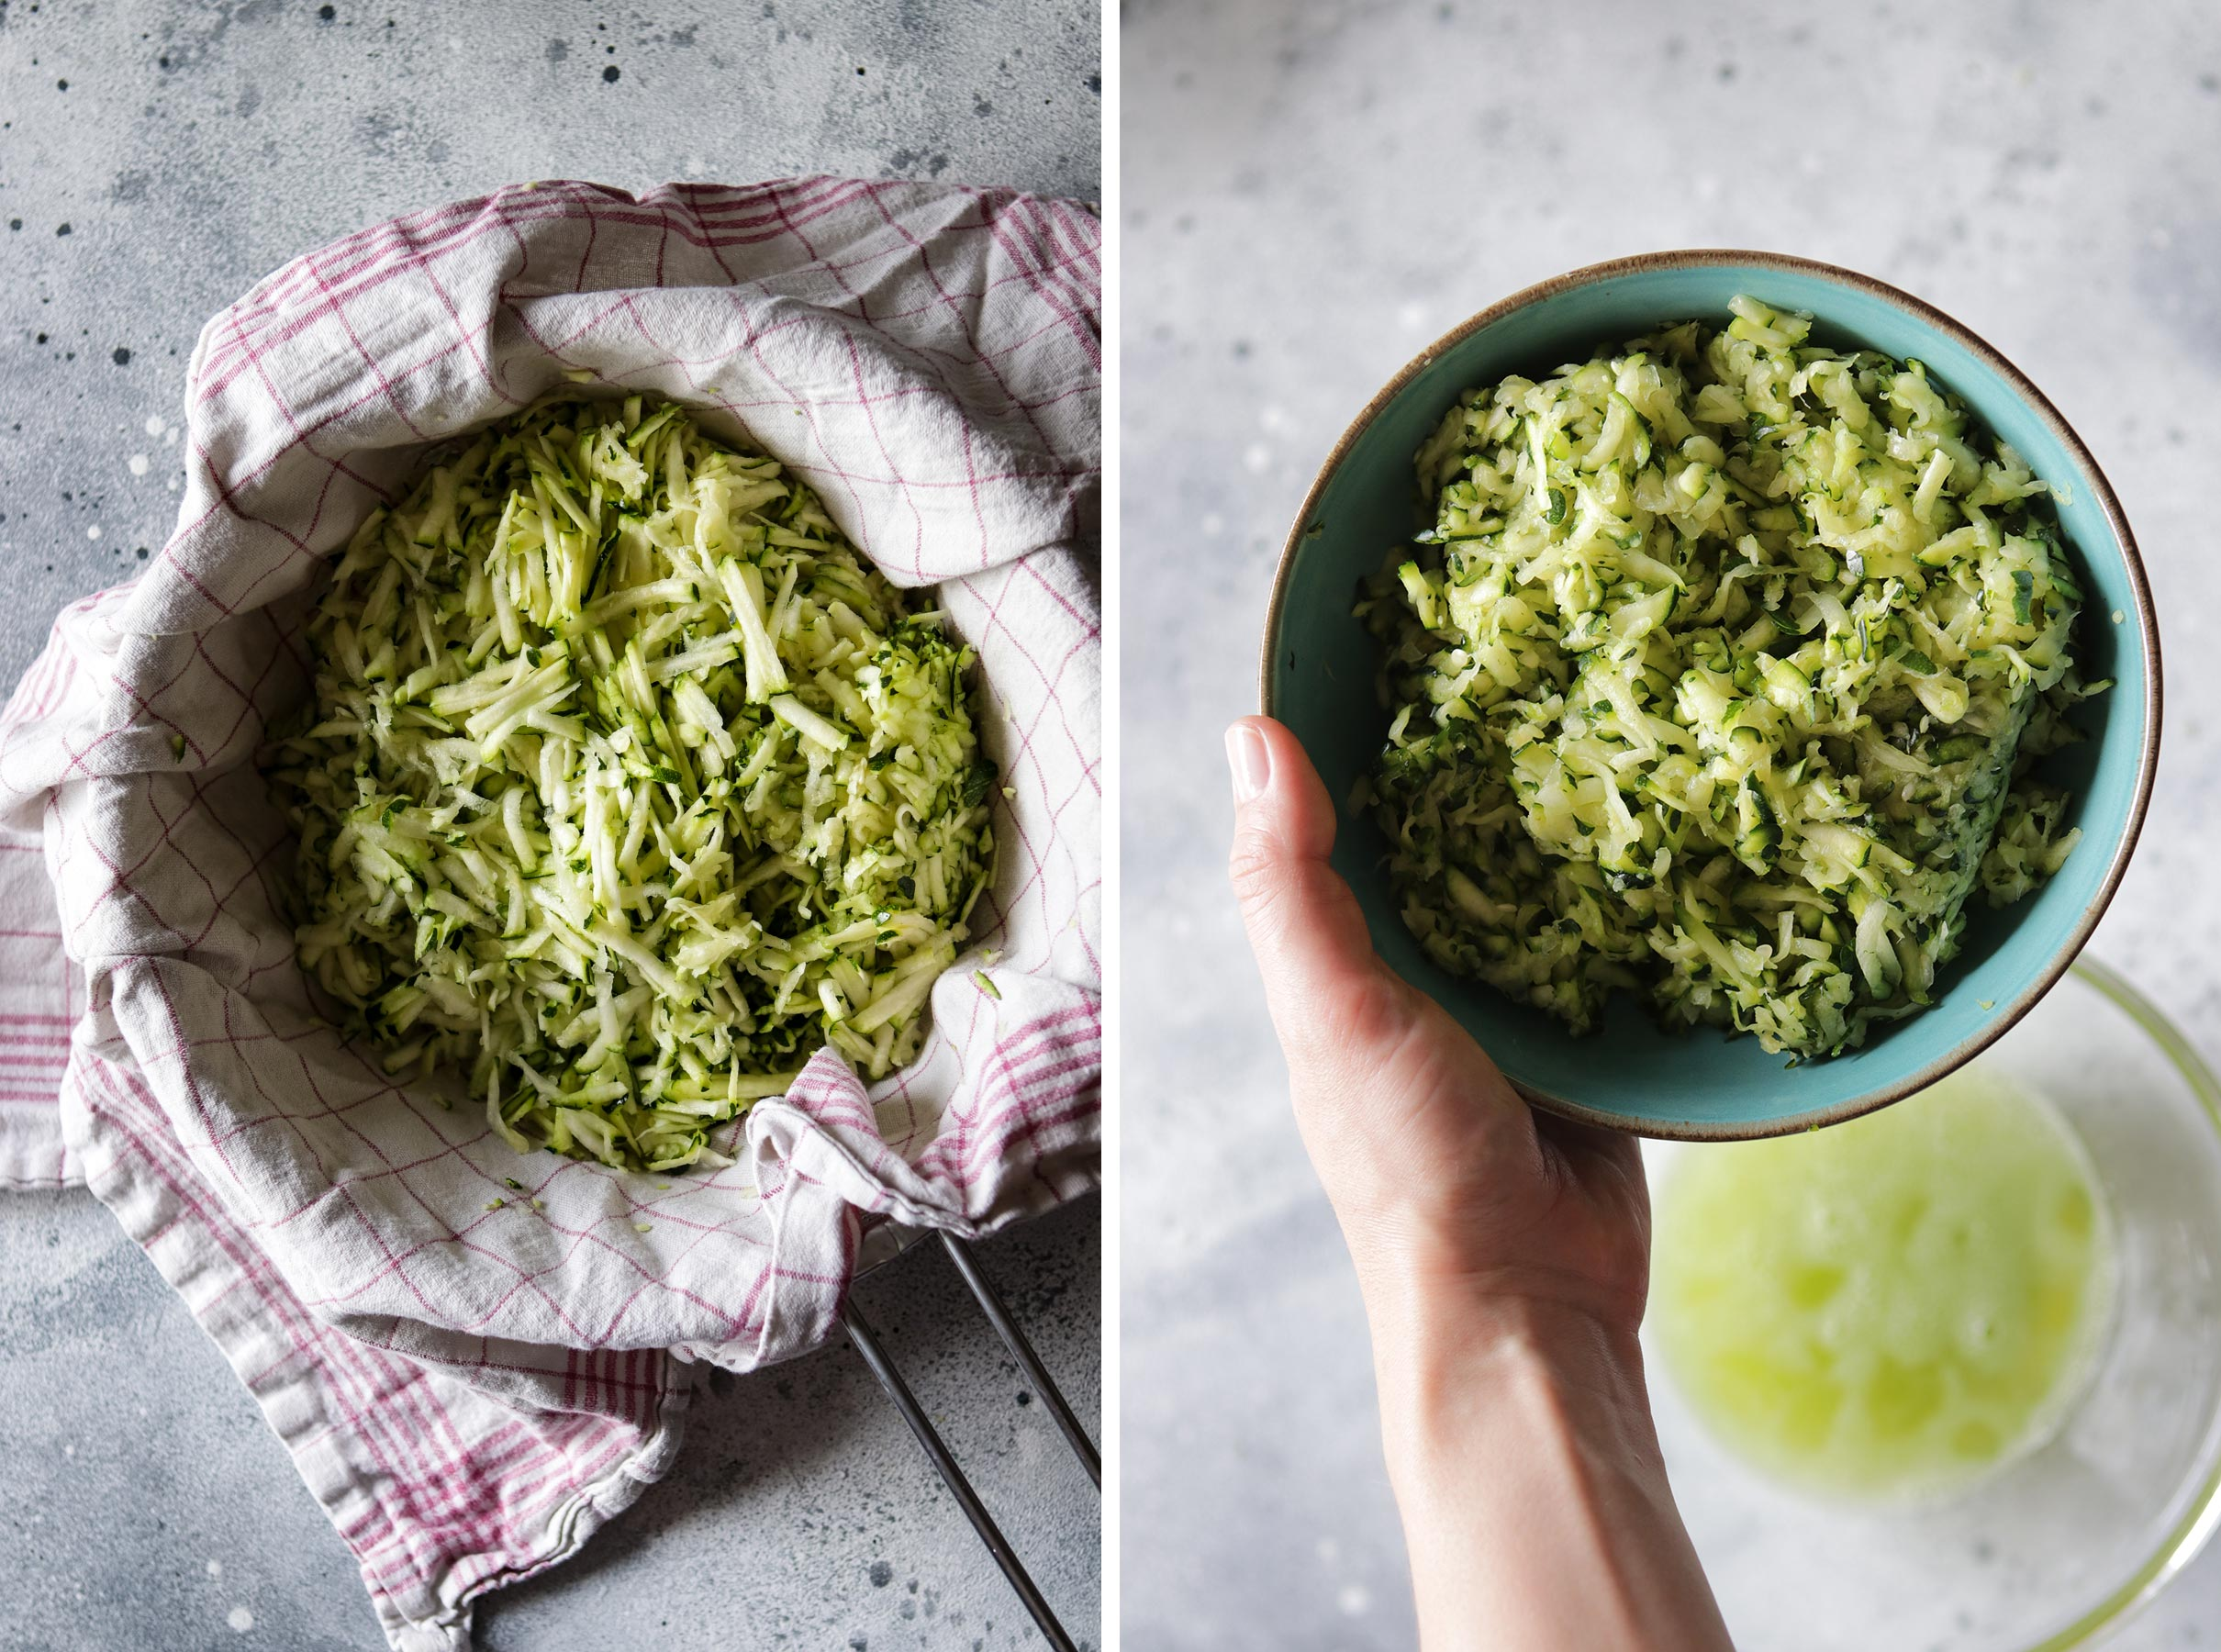 Grated Zucchini Before and After Squeezing